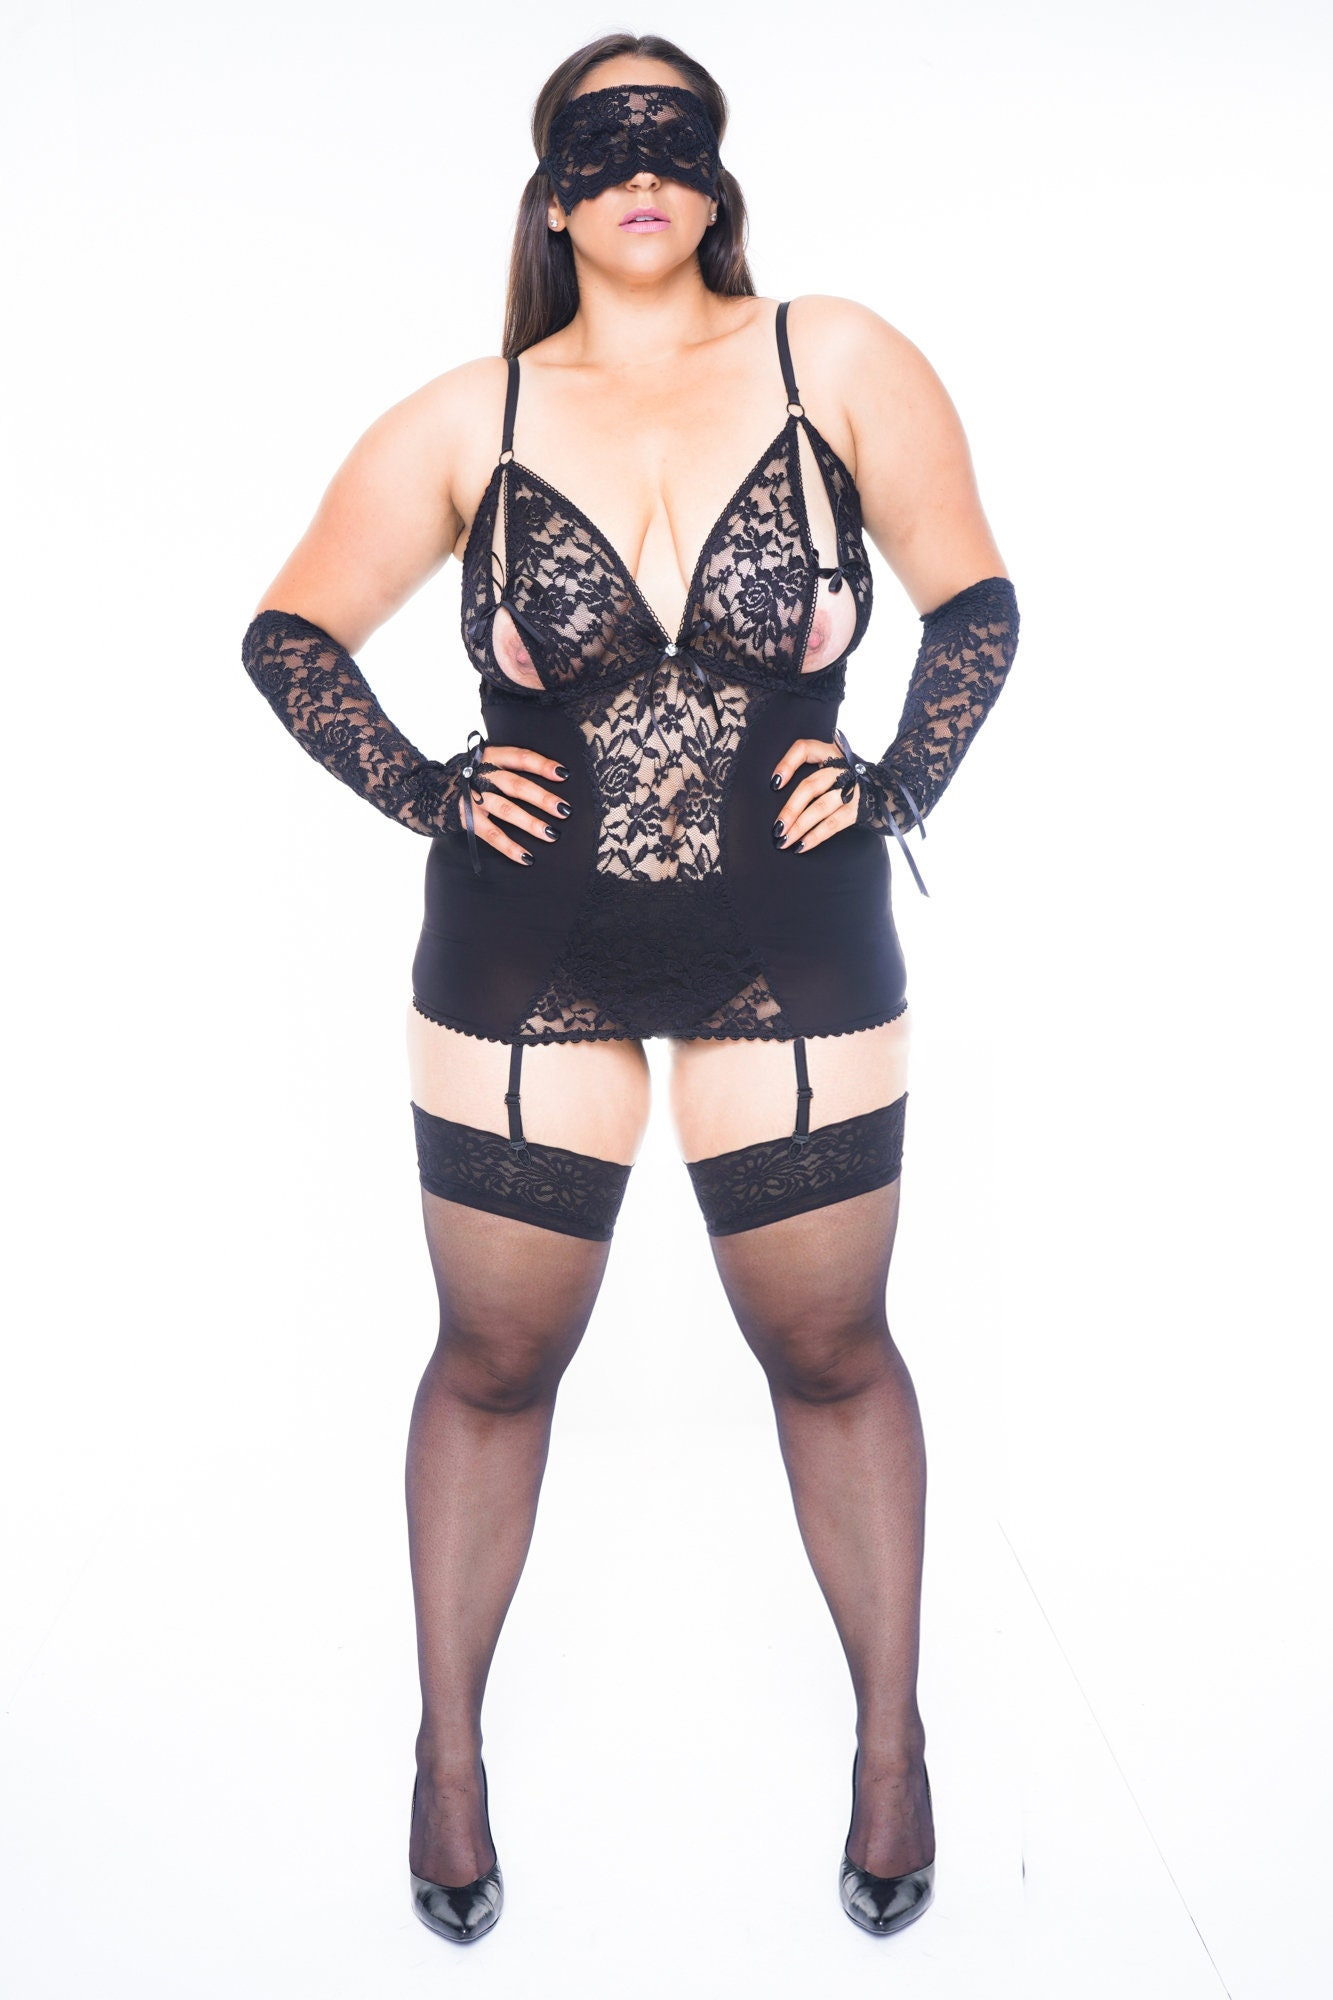 a8d731fdd5f THYRA Plus Size Lingerie See Through Lingerie Sexy Lingerie